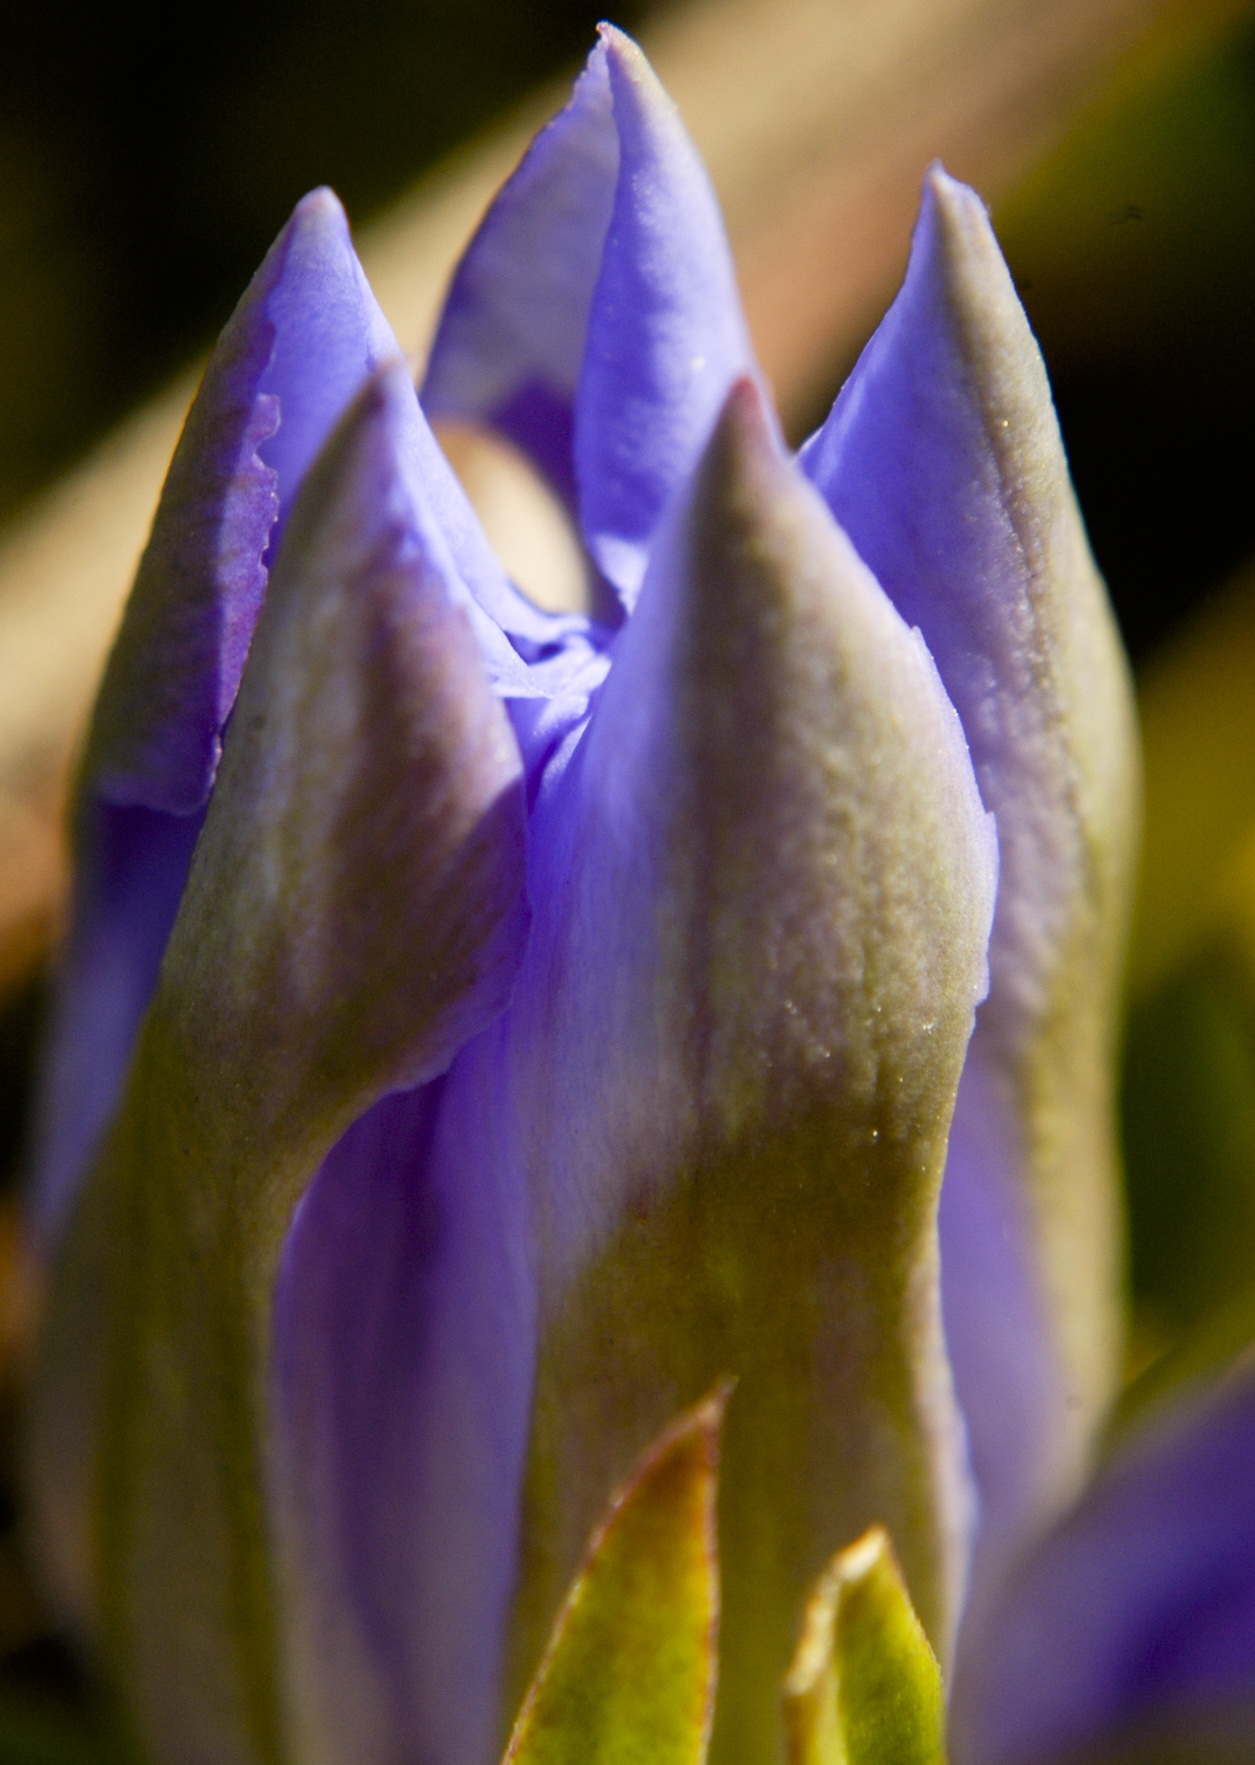 Image of downy gentian